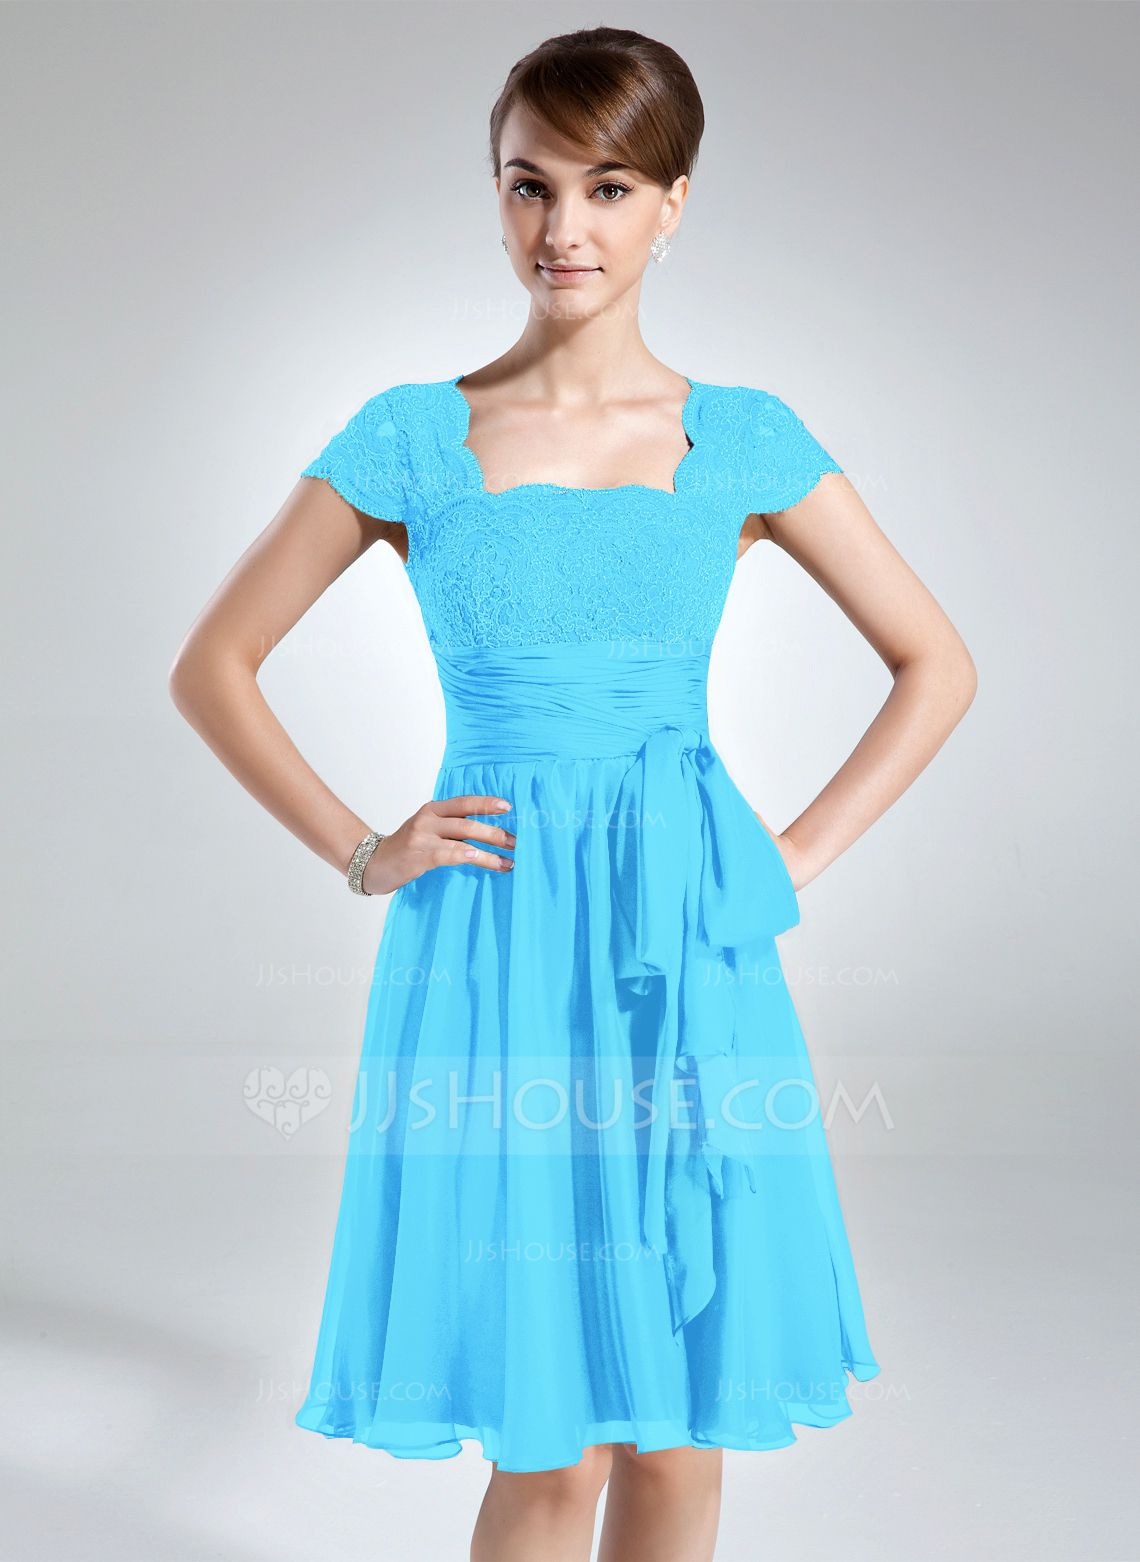 A-Line/Princess Square Neckline Knee-Length Chiffon Lace Mother of the Bride Dress With Ruffle Bow(s) (008006166) - JJsHouse